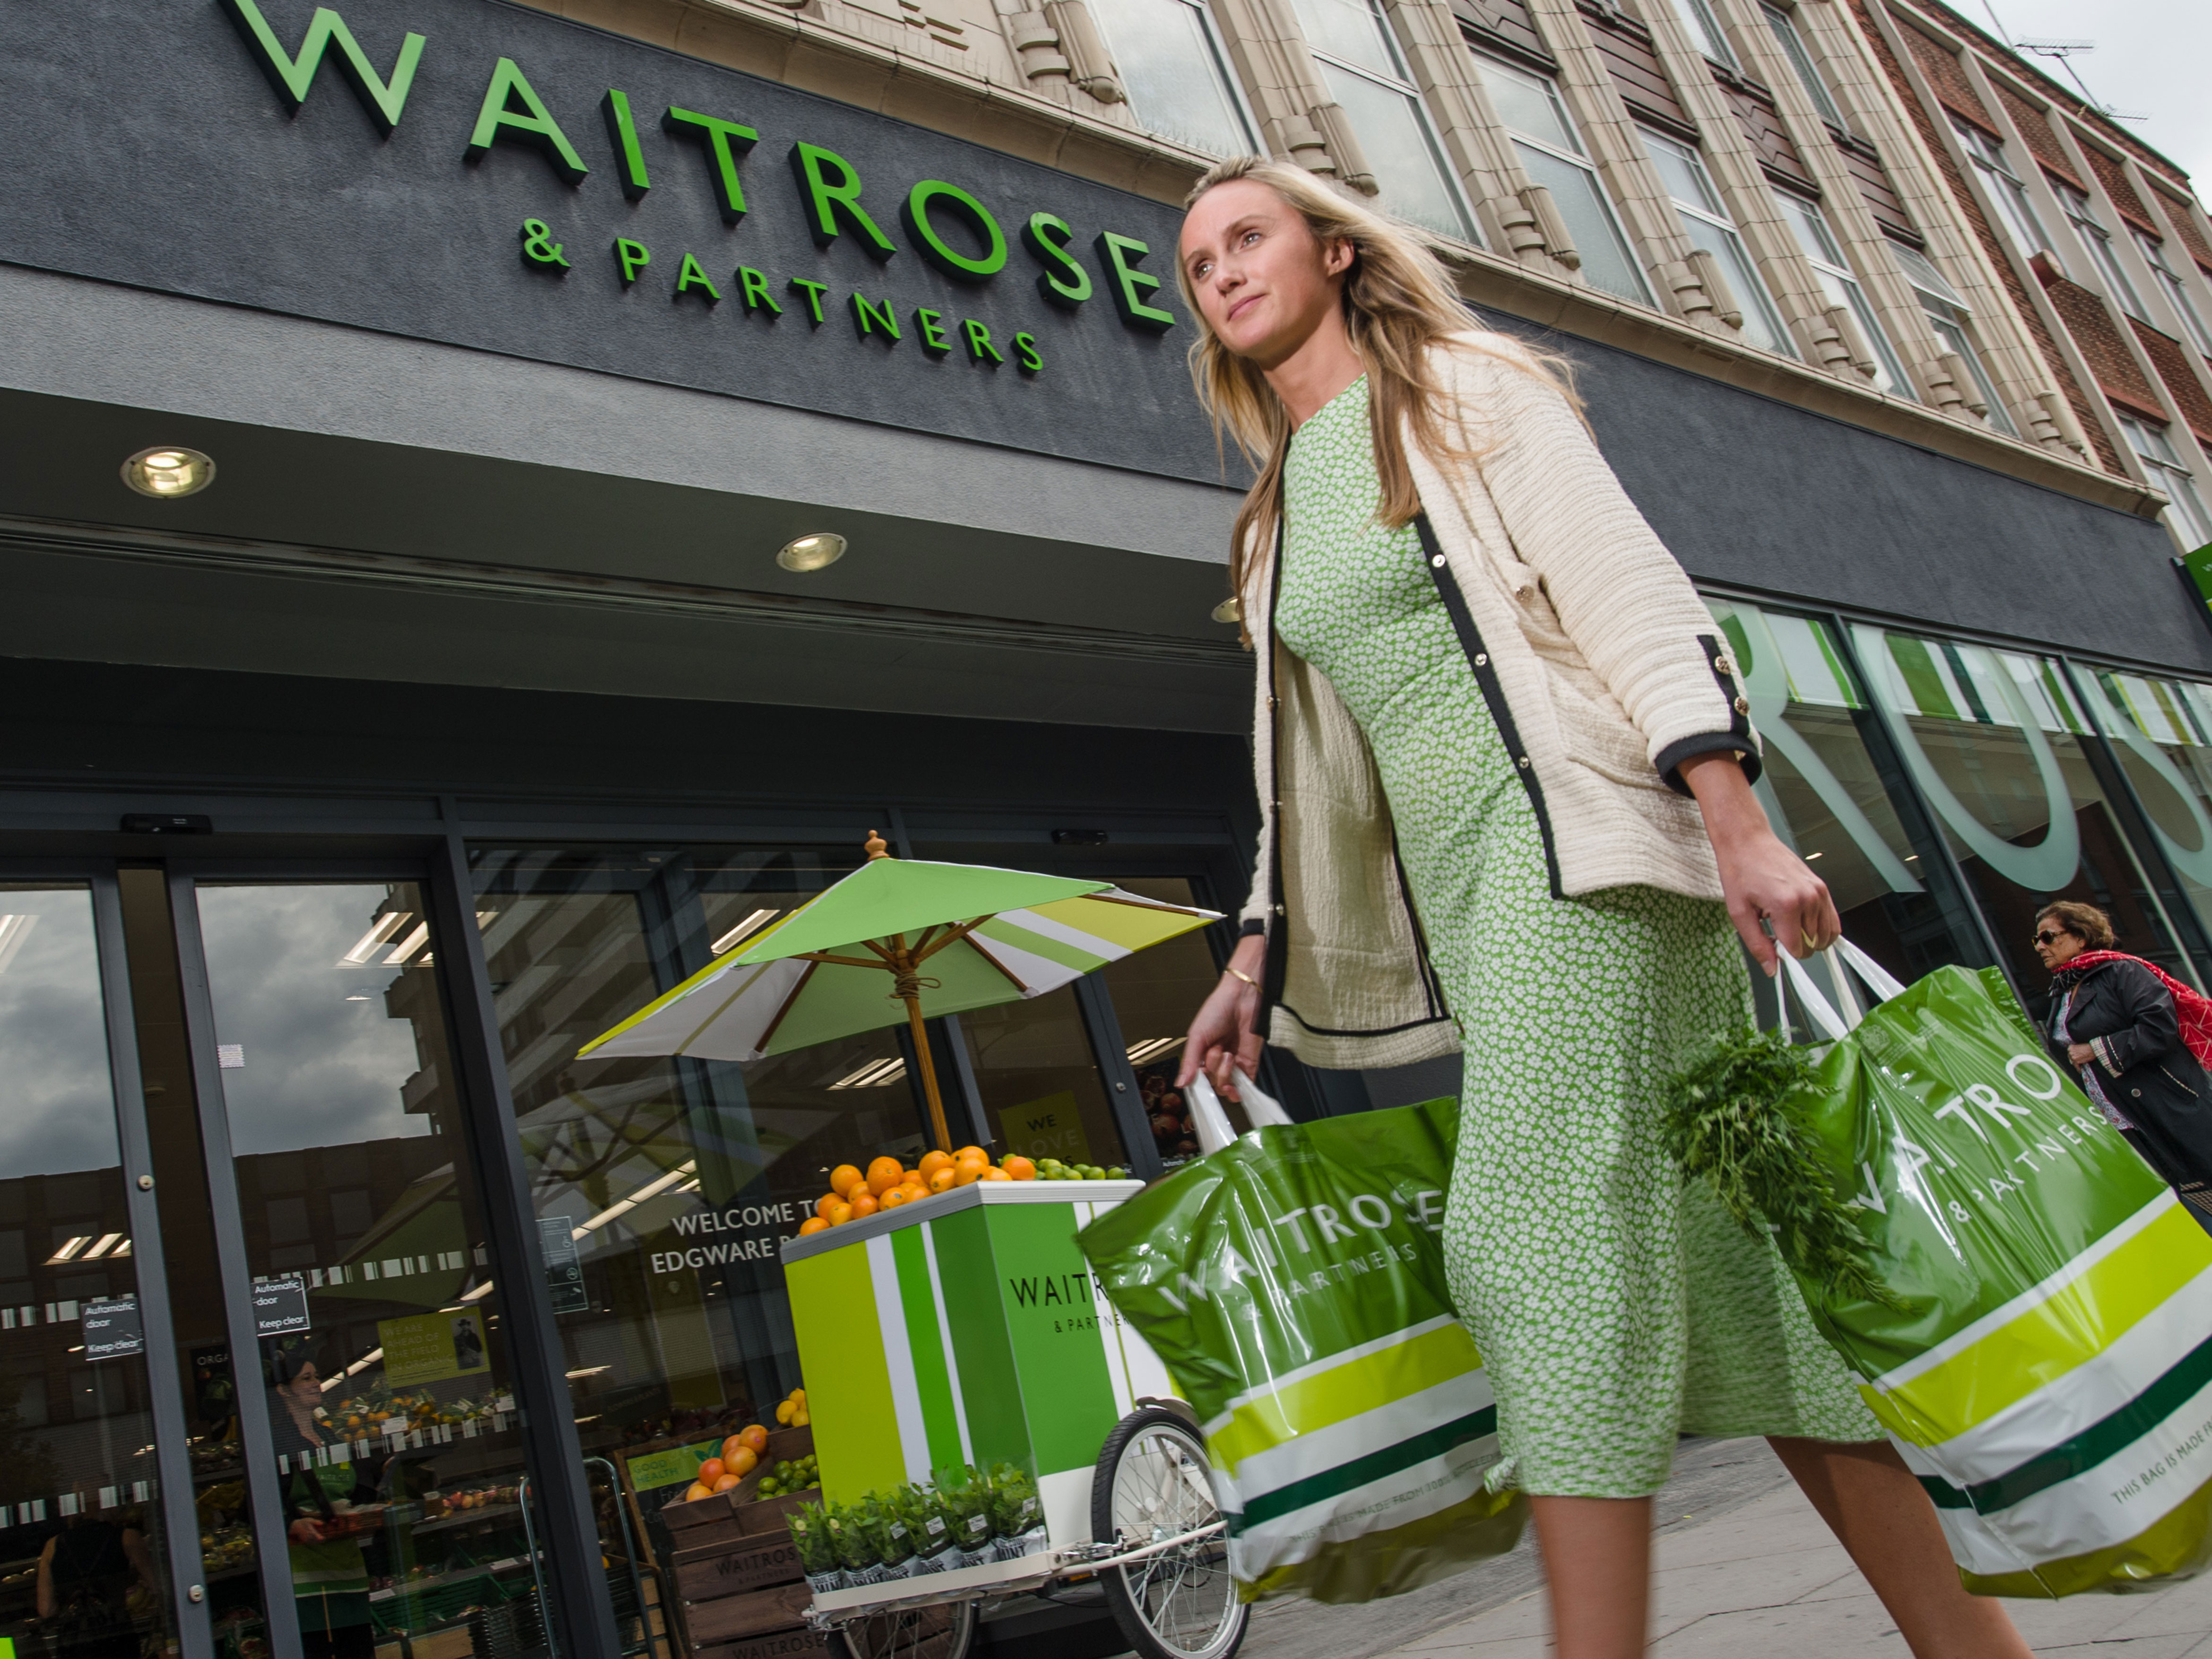 Above: Waitrose card sales are up double digit since the new replans from Woodmansterne's brokerage went in.